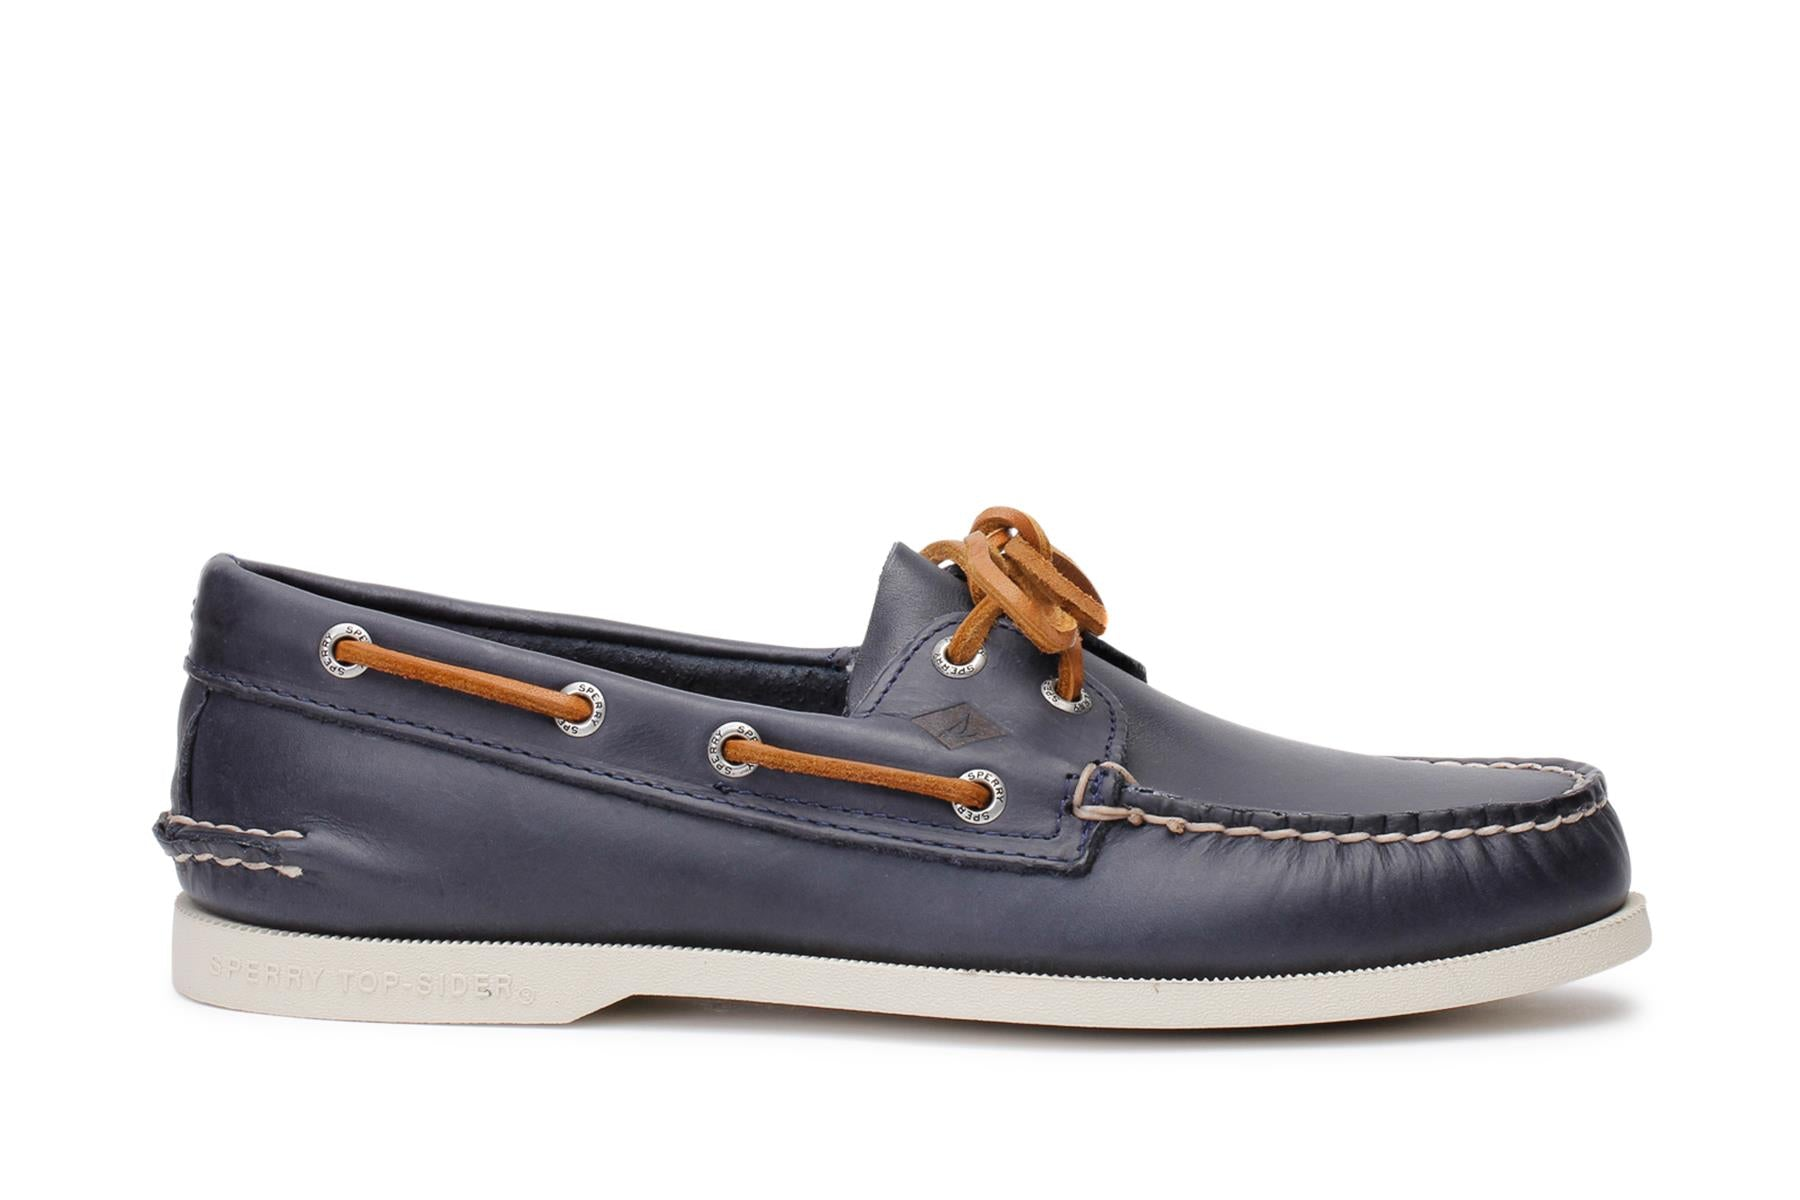 sperry-top-sider-mens-boat-shoes-a-o-2-eye-sarape-navy-sts13804-main